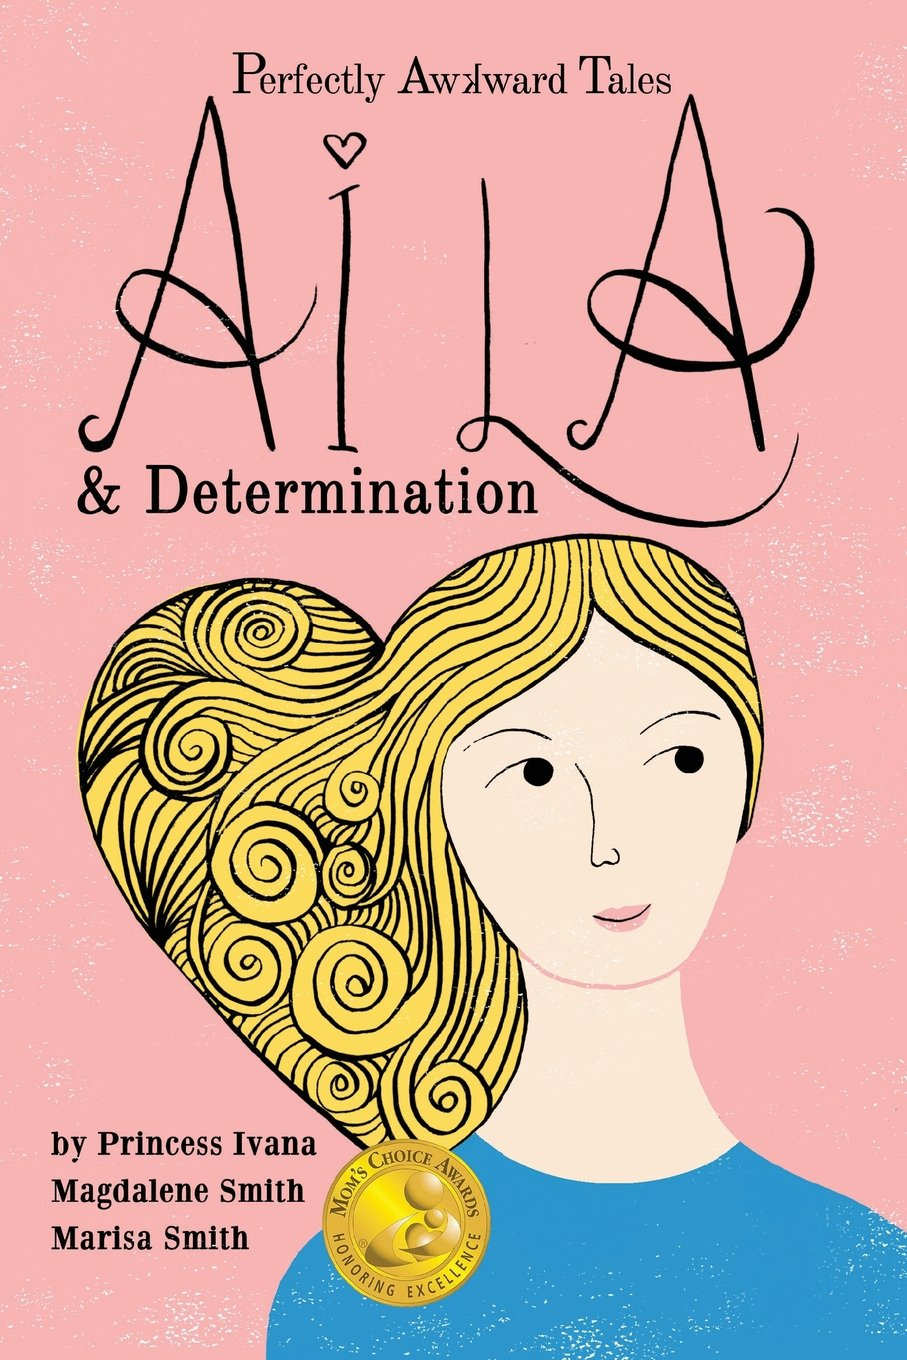 Download Perfectly Awkward Tales: Aila & Determination PDF